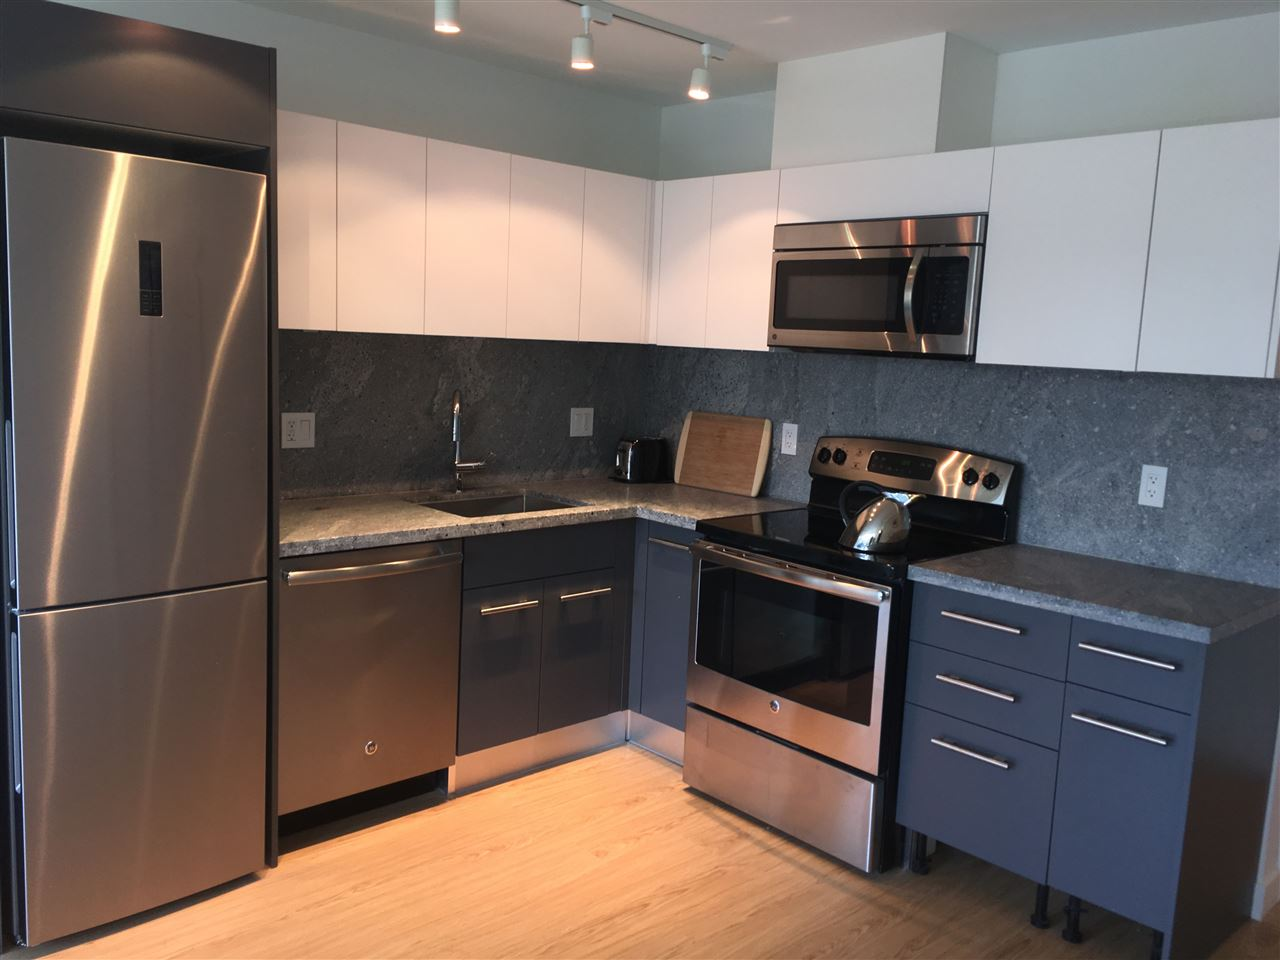 "Photo 5: 603 188 KEEFER Street in Vancouver: Downtown VW Condo for sale in ""188 Keefer"" (Vancouver West)  : MLS(r) # R2151485"